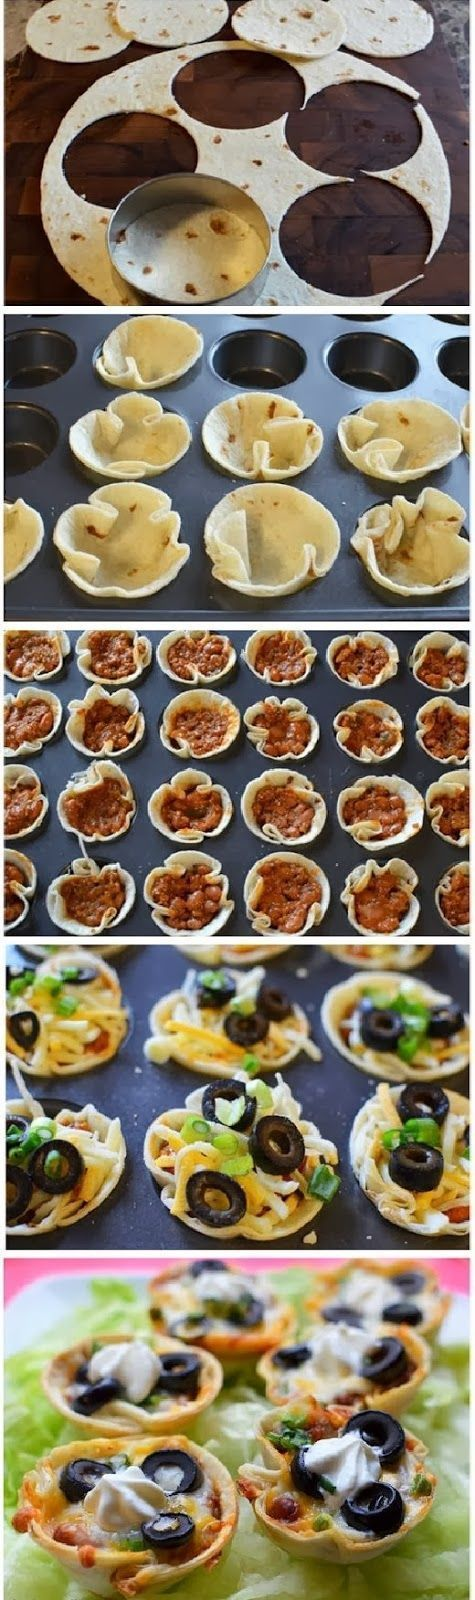 Mini tacos great for parties. Use low carb tortillas!!